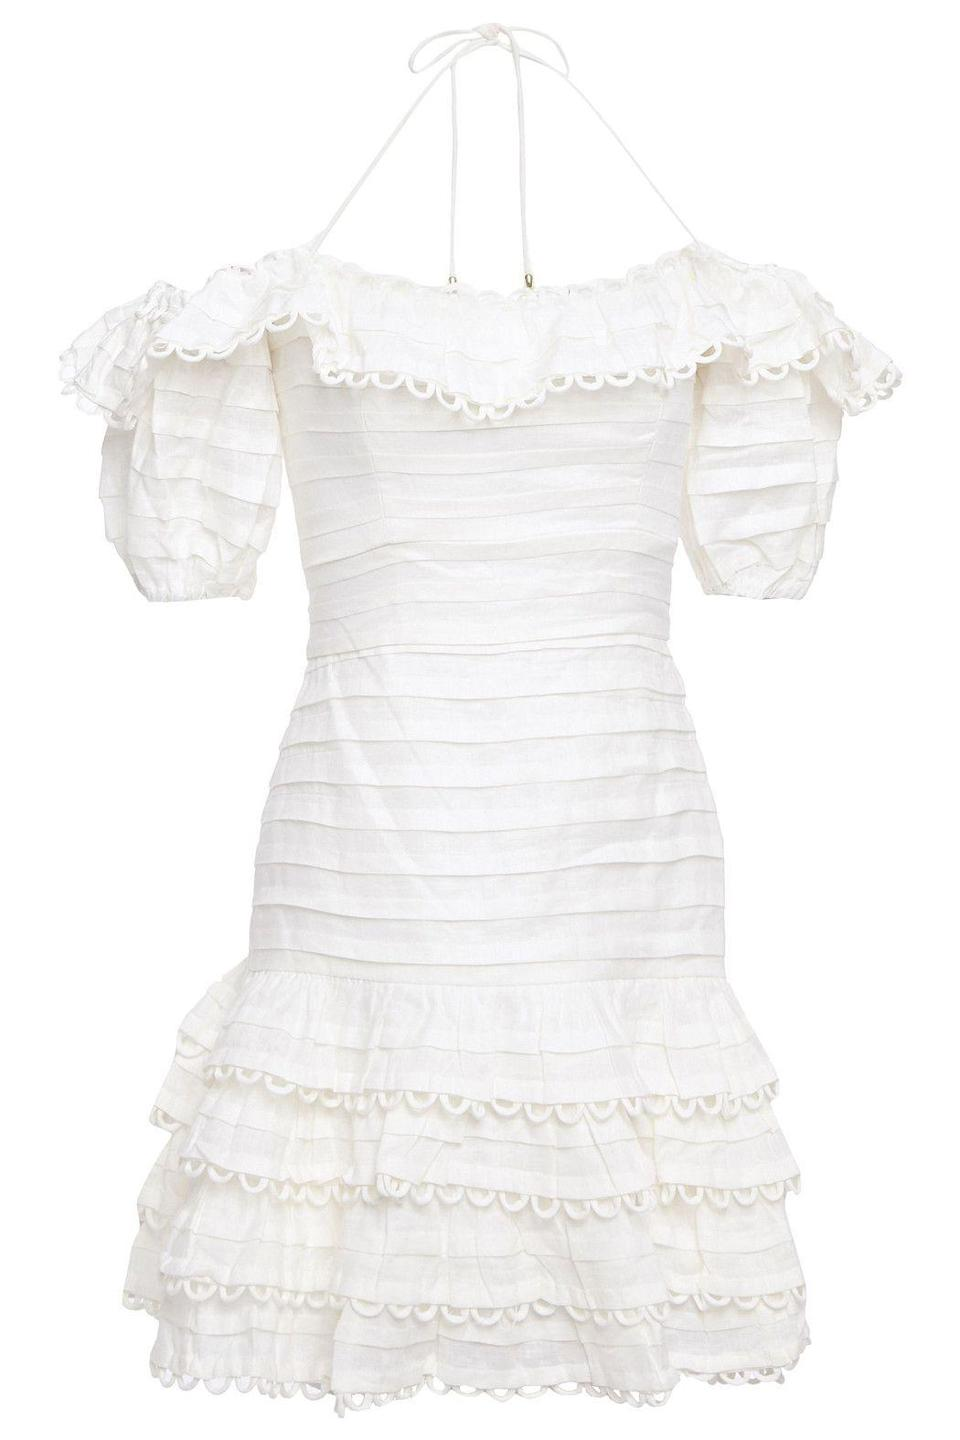 """<p><strong>ZIMMERMANN</strong></p><p>theoutnet.com</p><p><strong>$425.00</strong></p><p><a href=""""https://go.redirectingat.com?id=74968X1596630&url=https%3A%2F%2Fwww.theoutnet.com%2Fen-us%2Fshop%2Fproduct%2Fzimmermann%2Fdresses%2Fmini-dress%2Fallia-pintuck-off-the-shoulder-ruffled-linen-mini-dress%2F2499567818787547&sref=https%3A%2F%2Fwww.harpersbazaar.com%2Ffashion%2Ftrends%2Fg34788766%2Fthe-outnets-black-friday-sale-2020%2F"""" rel=""""nofollow noopener"""" target=""""_blank"""" data-ylk=""""slk:Shop Now"""" class=""""link rapid-noclick-resp"""">Shop Now</a></p><p>This sweet LWD deserves to hang in your wardrobe. </p>"""